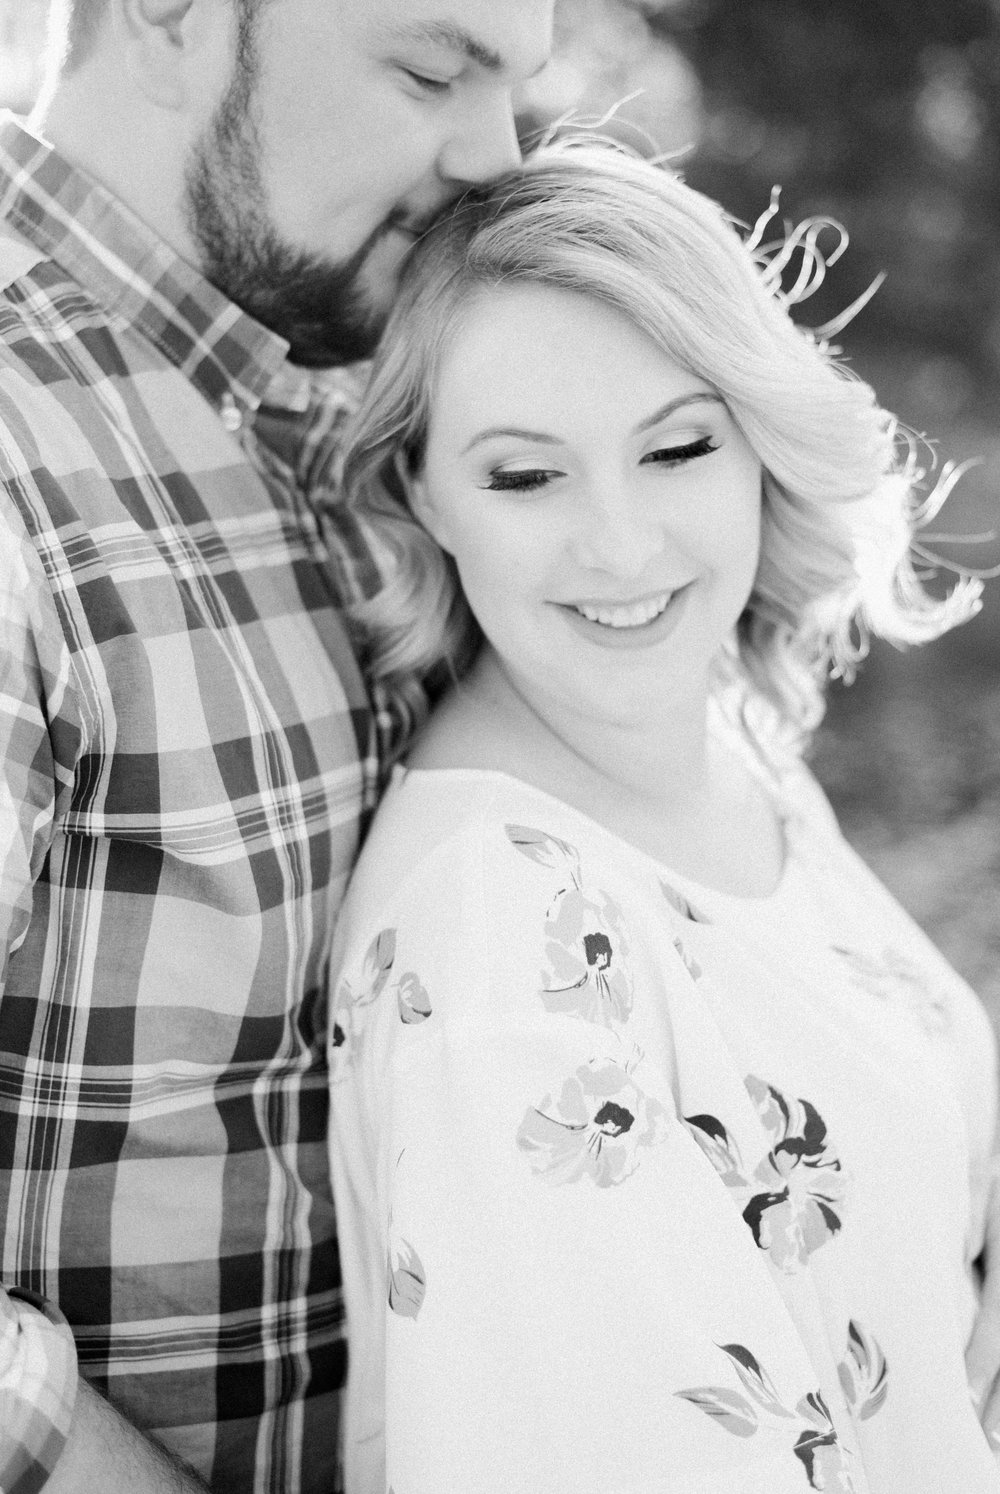 SorellaFarms_Jessica+Dylan_MaternitySession_Virginiaweddingphotographer 11.jpg